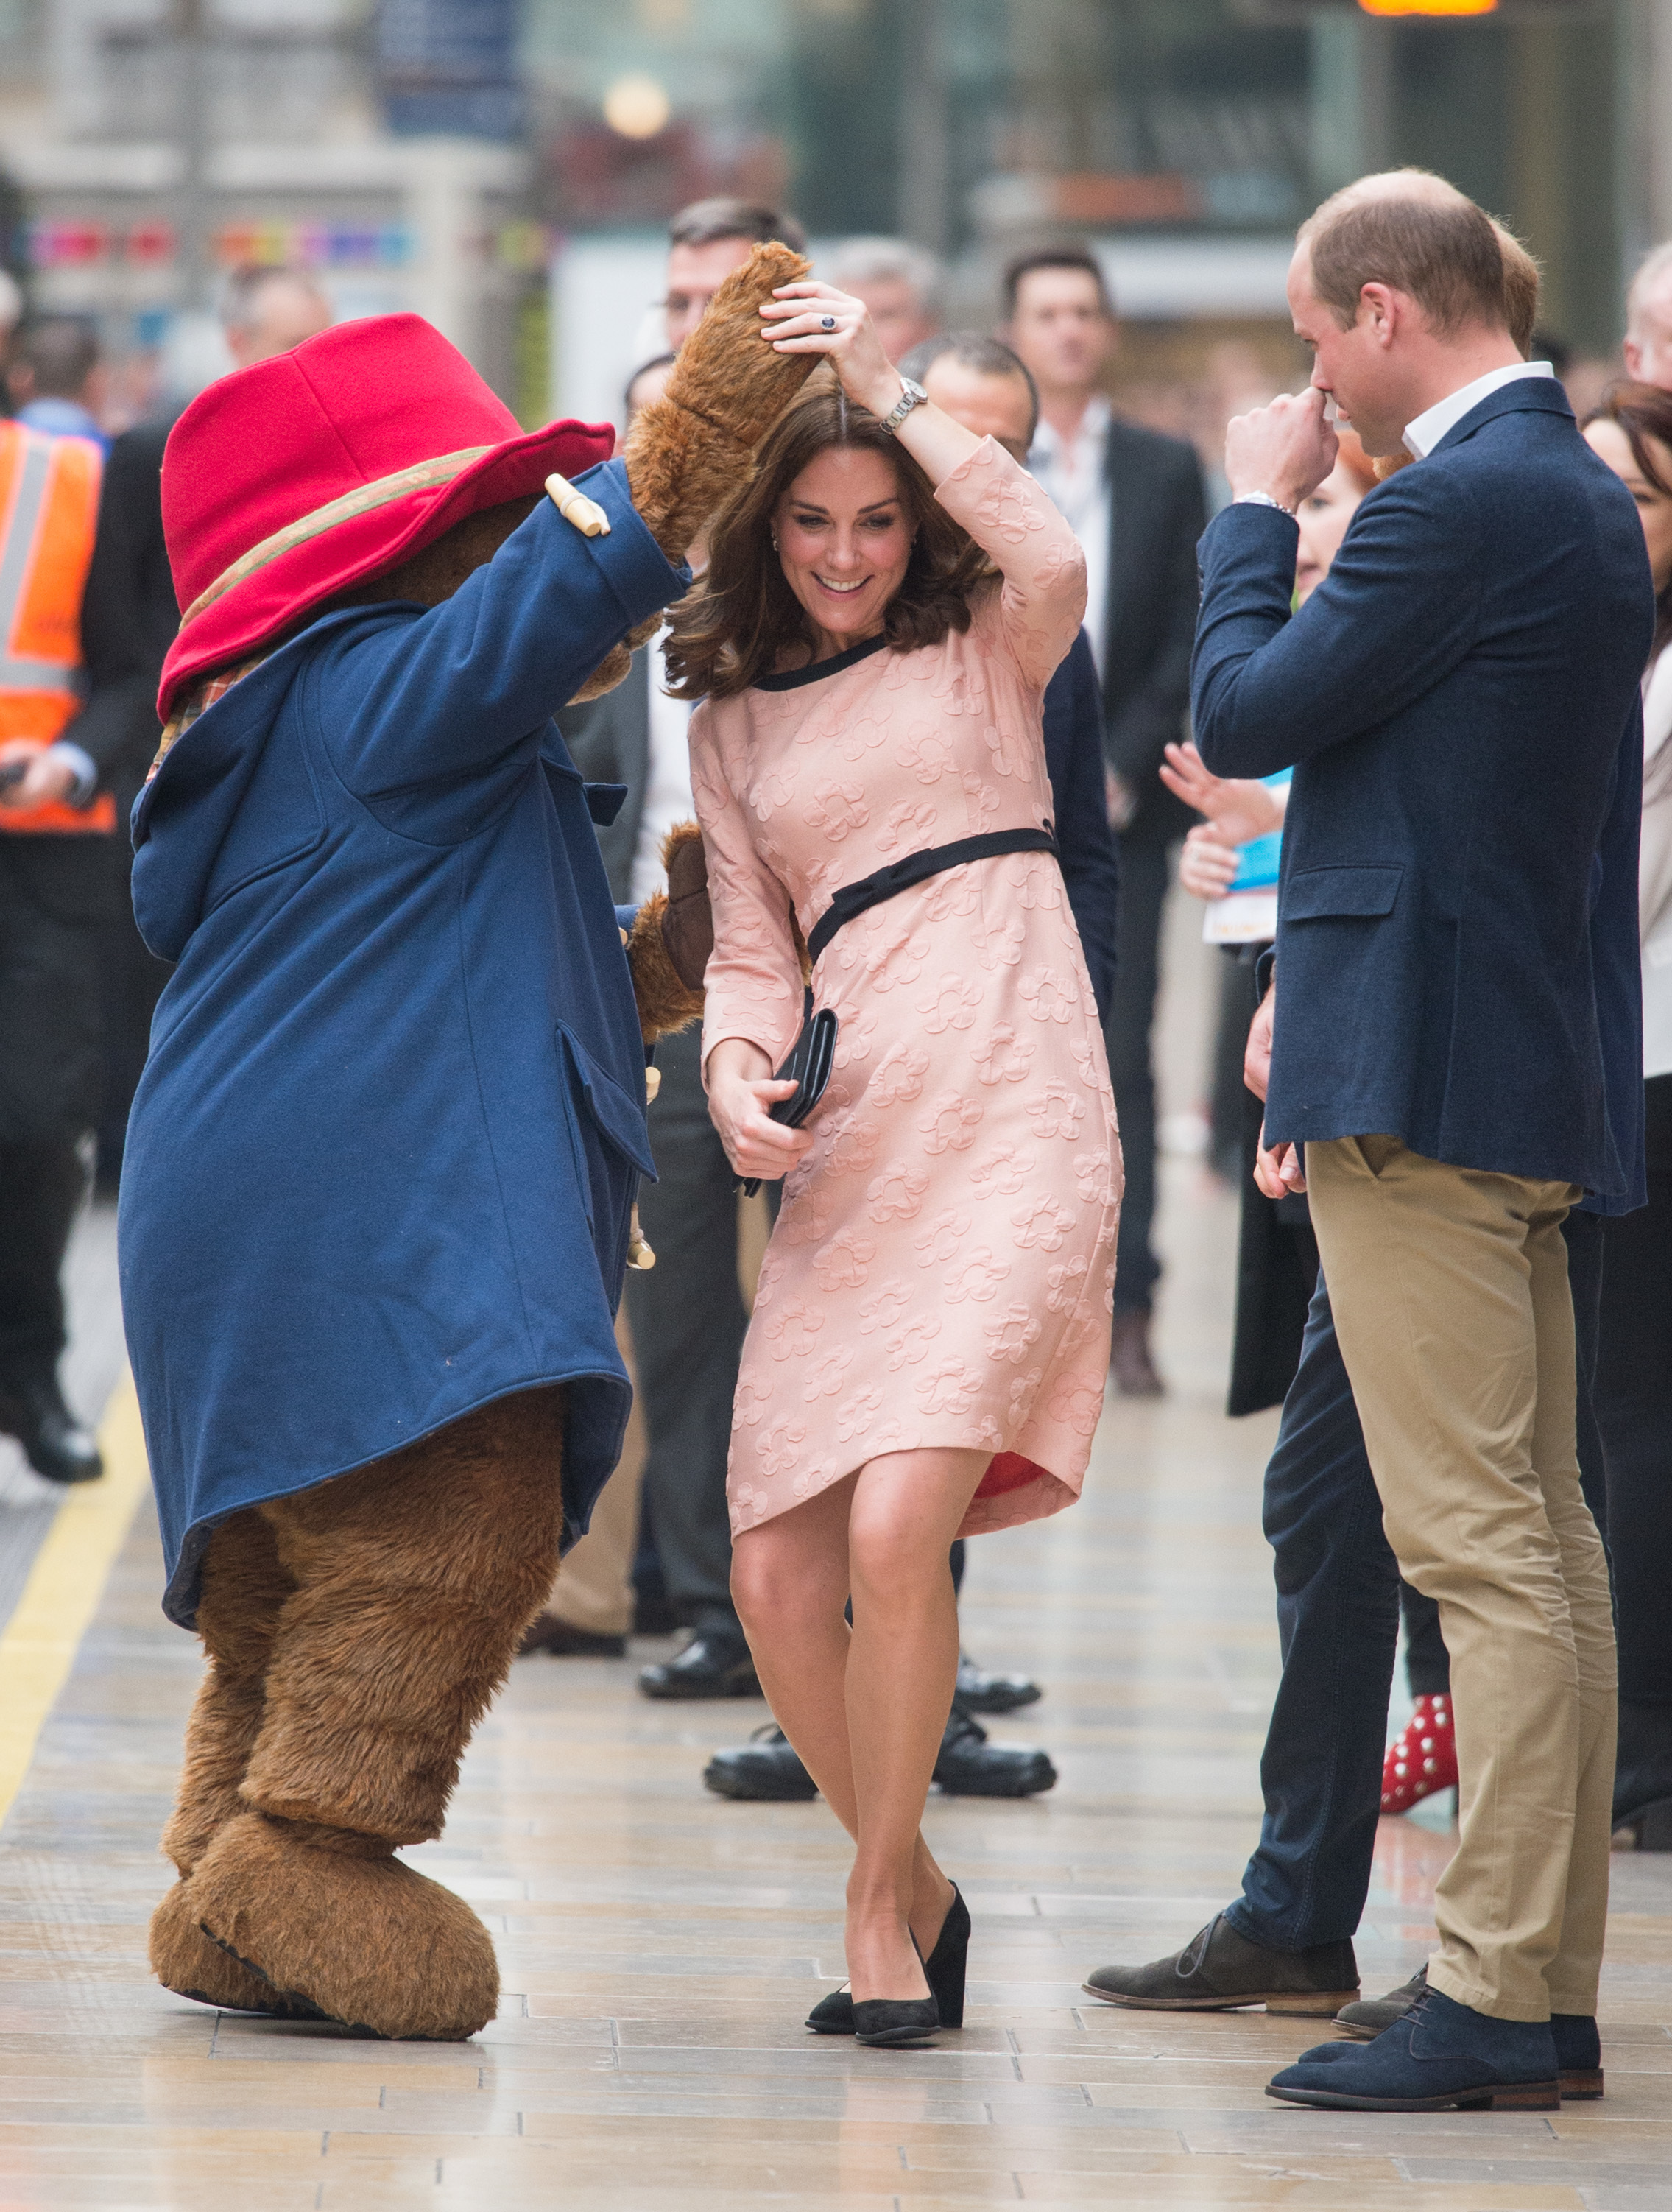 Duchess Kate and Prince William attend and event with Paddington Bear at London's Paddington Station on Oct. 13, 2017.